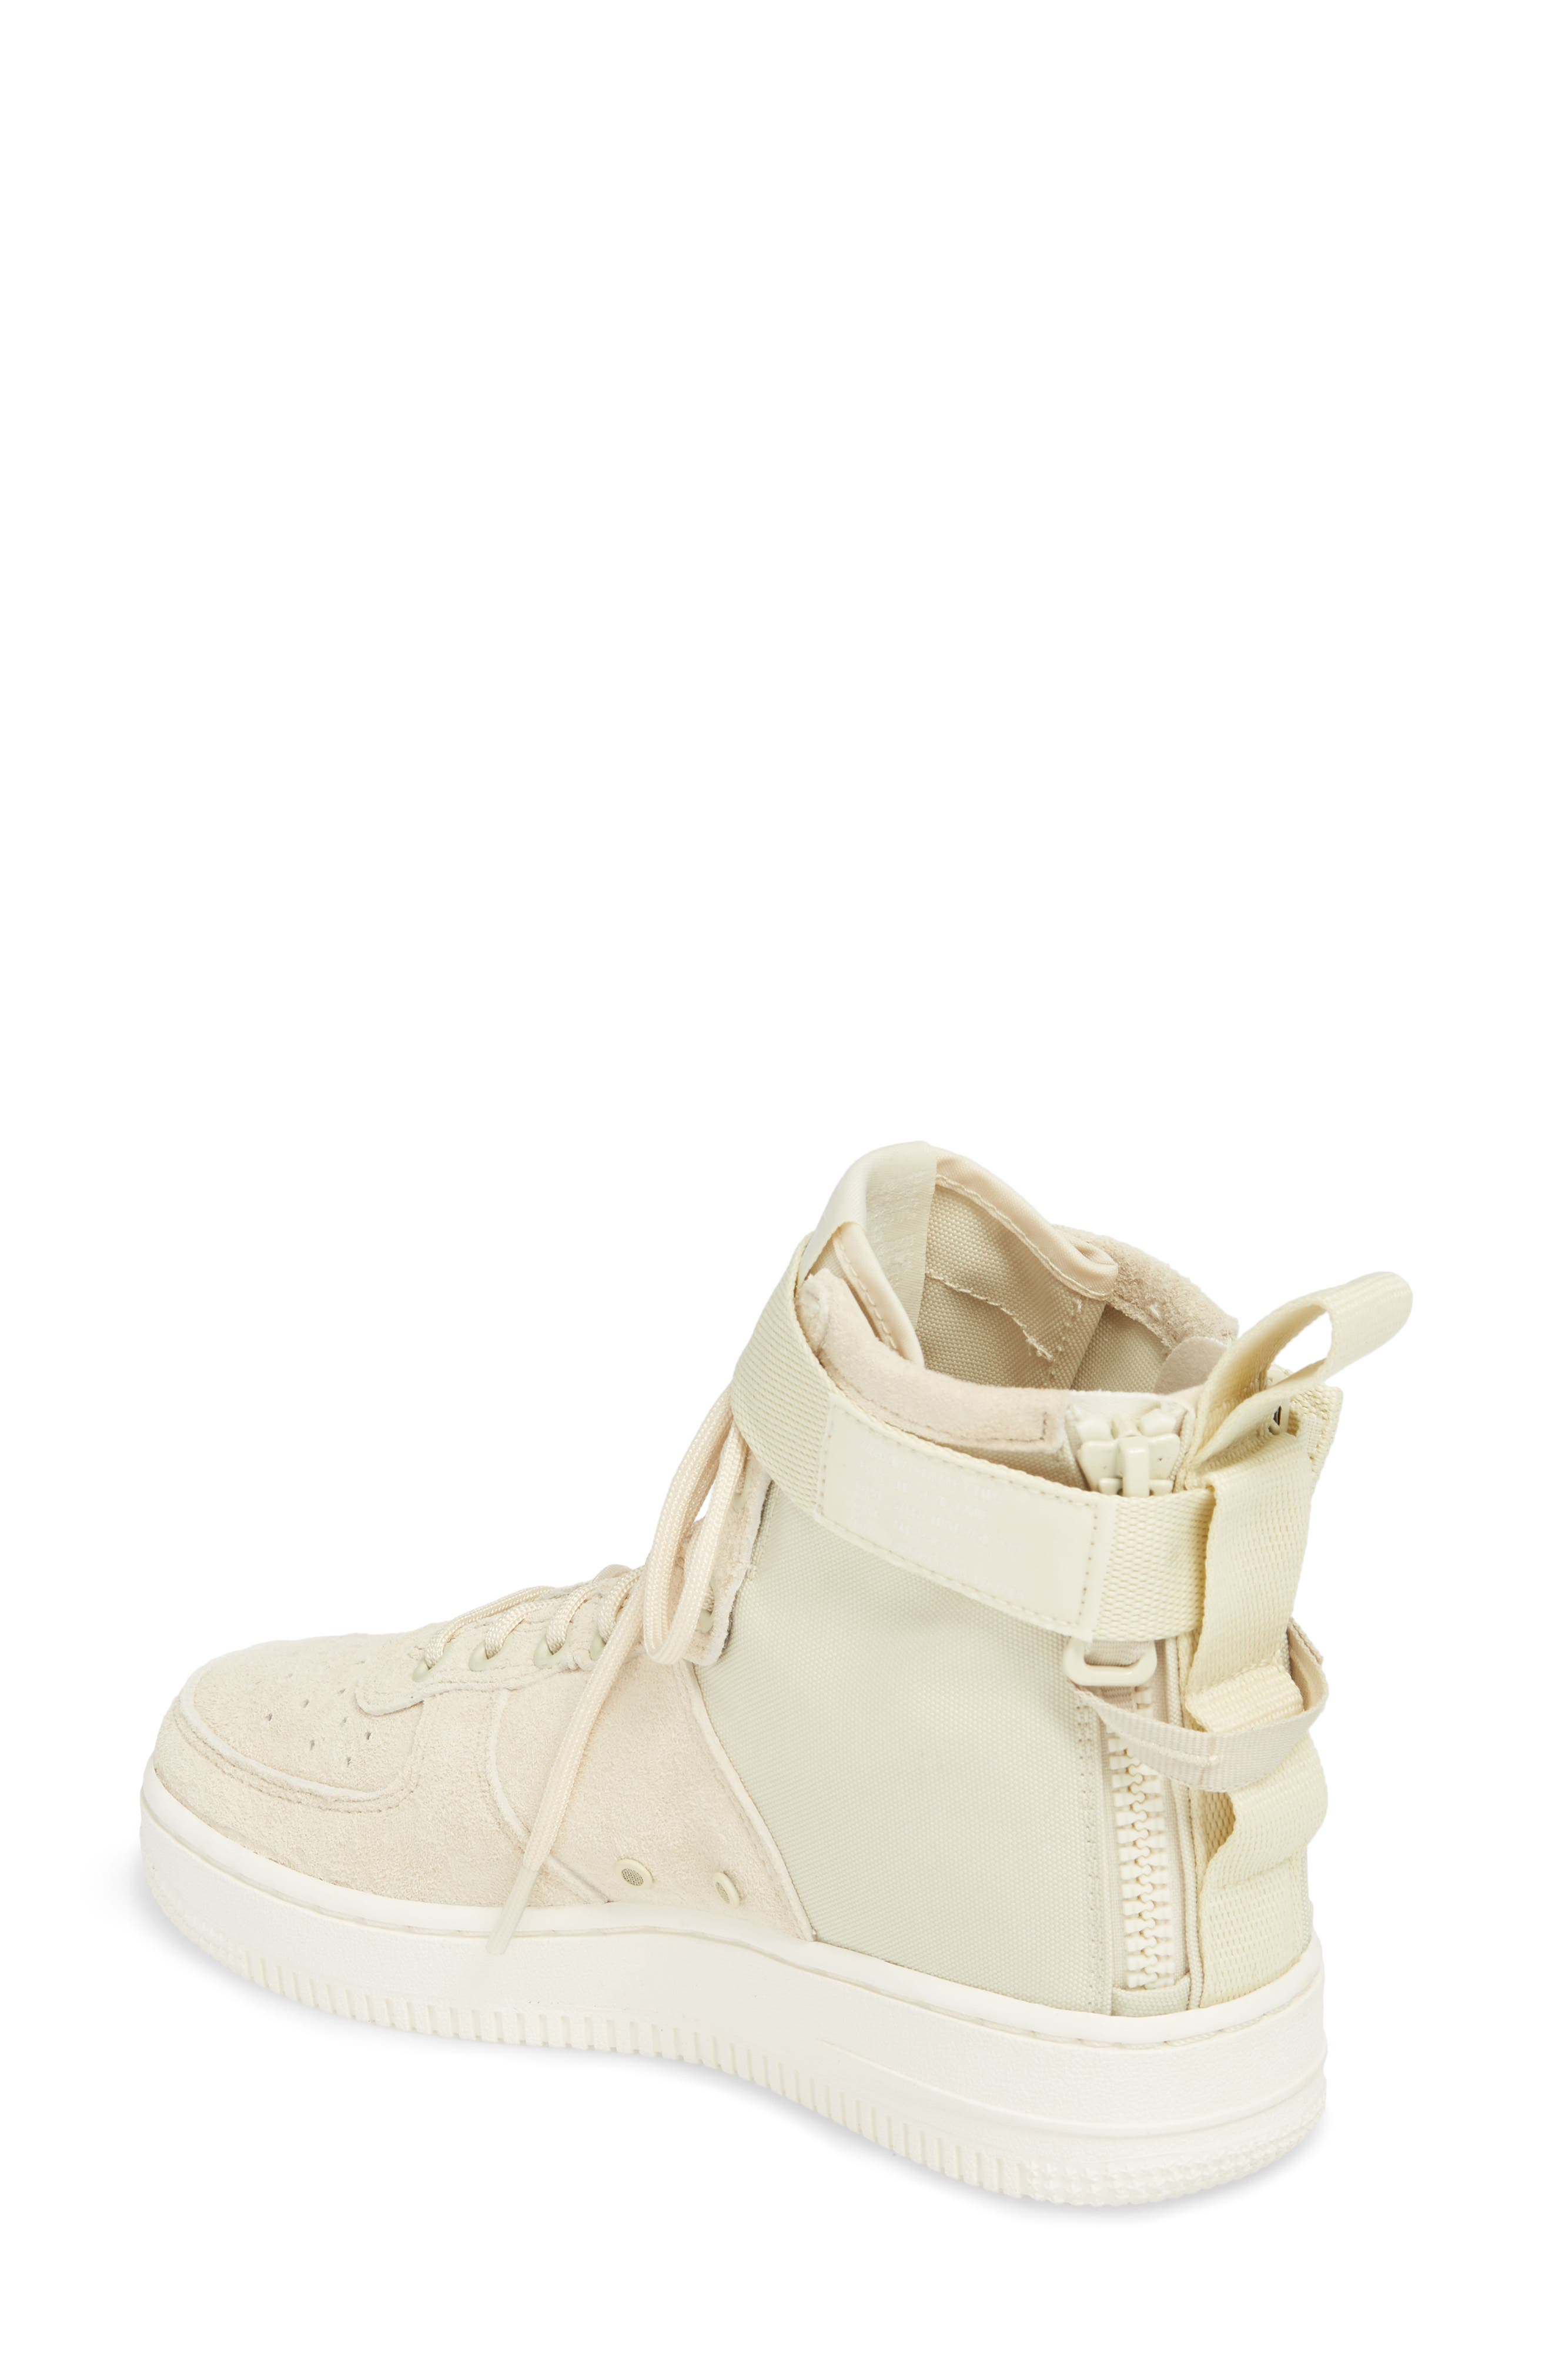 SF Air Force 1 Mid Sneaker,                             Alternate thumbnail 2, color,                             FOSSIL/ SAIL